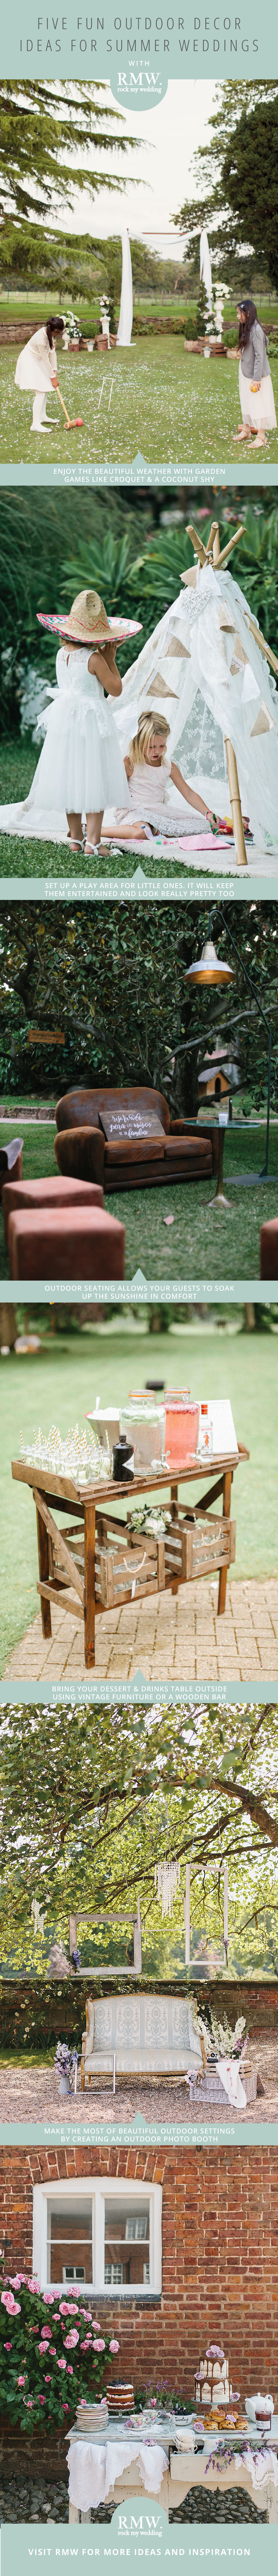 Five Fun Outdoor Decor Ideas for Summer Weddings